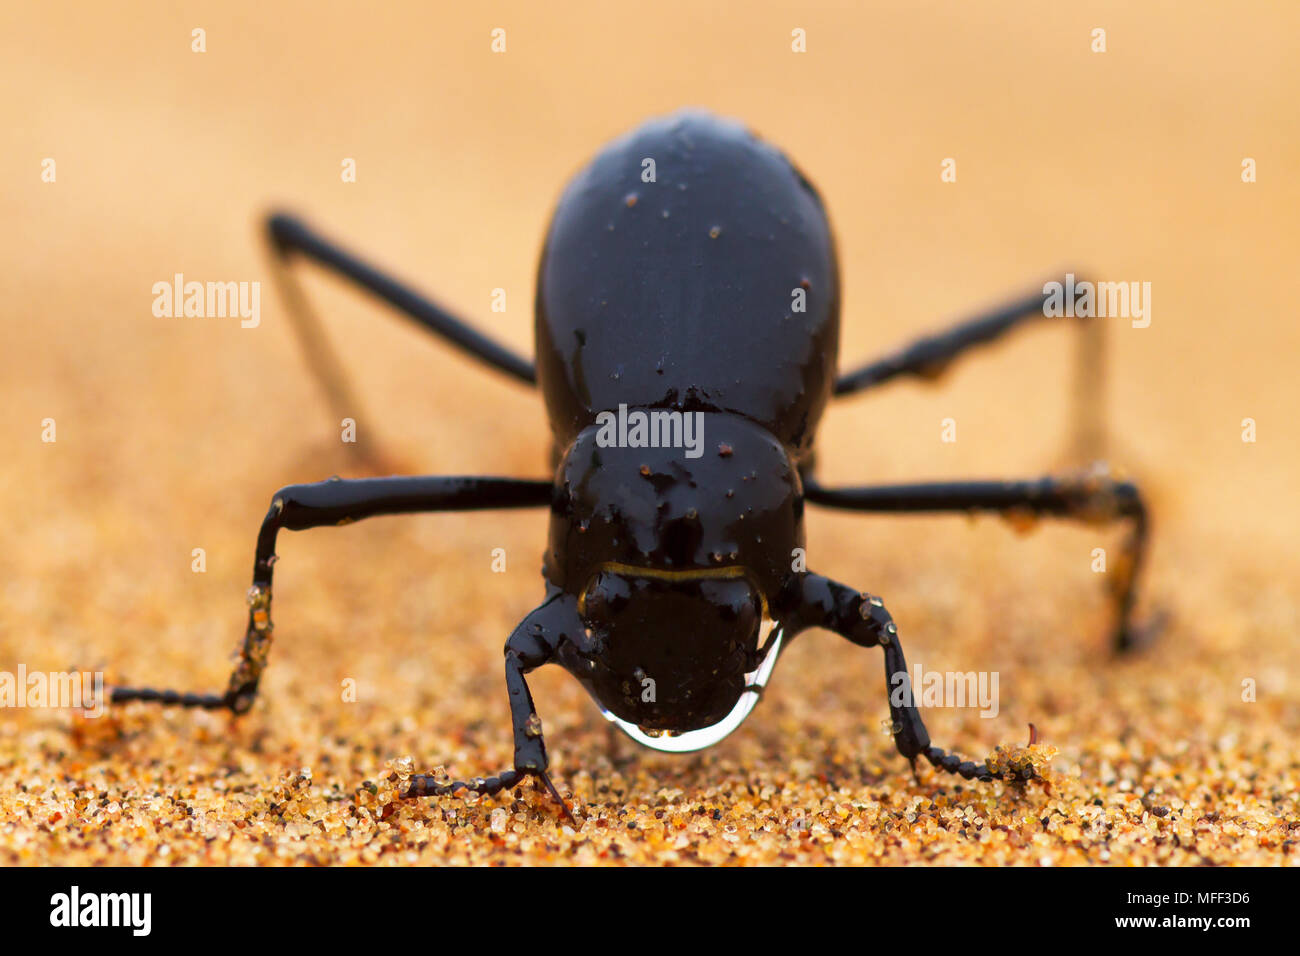 The Namib Desert beetle (genus Stenocara)  lives in one of the most arid areas with only one and half inch (40 mm) of rain per year, and has developed Stock Photo